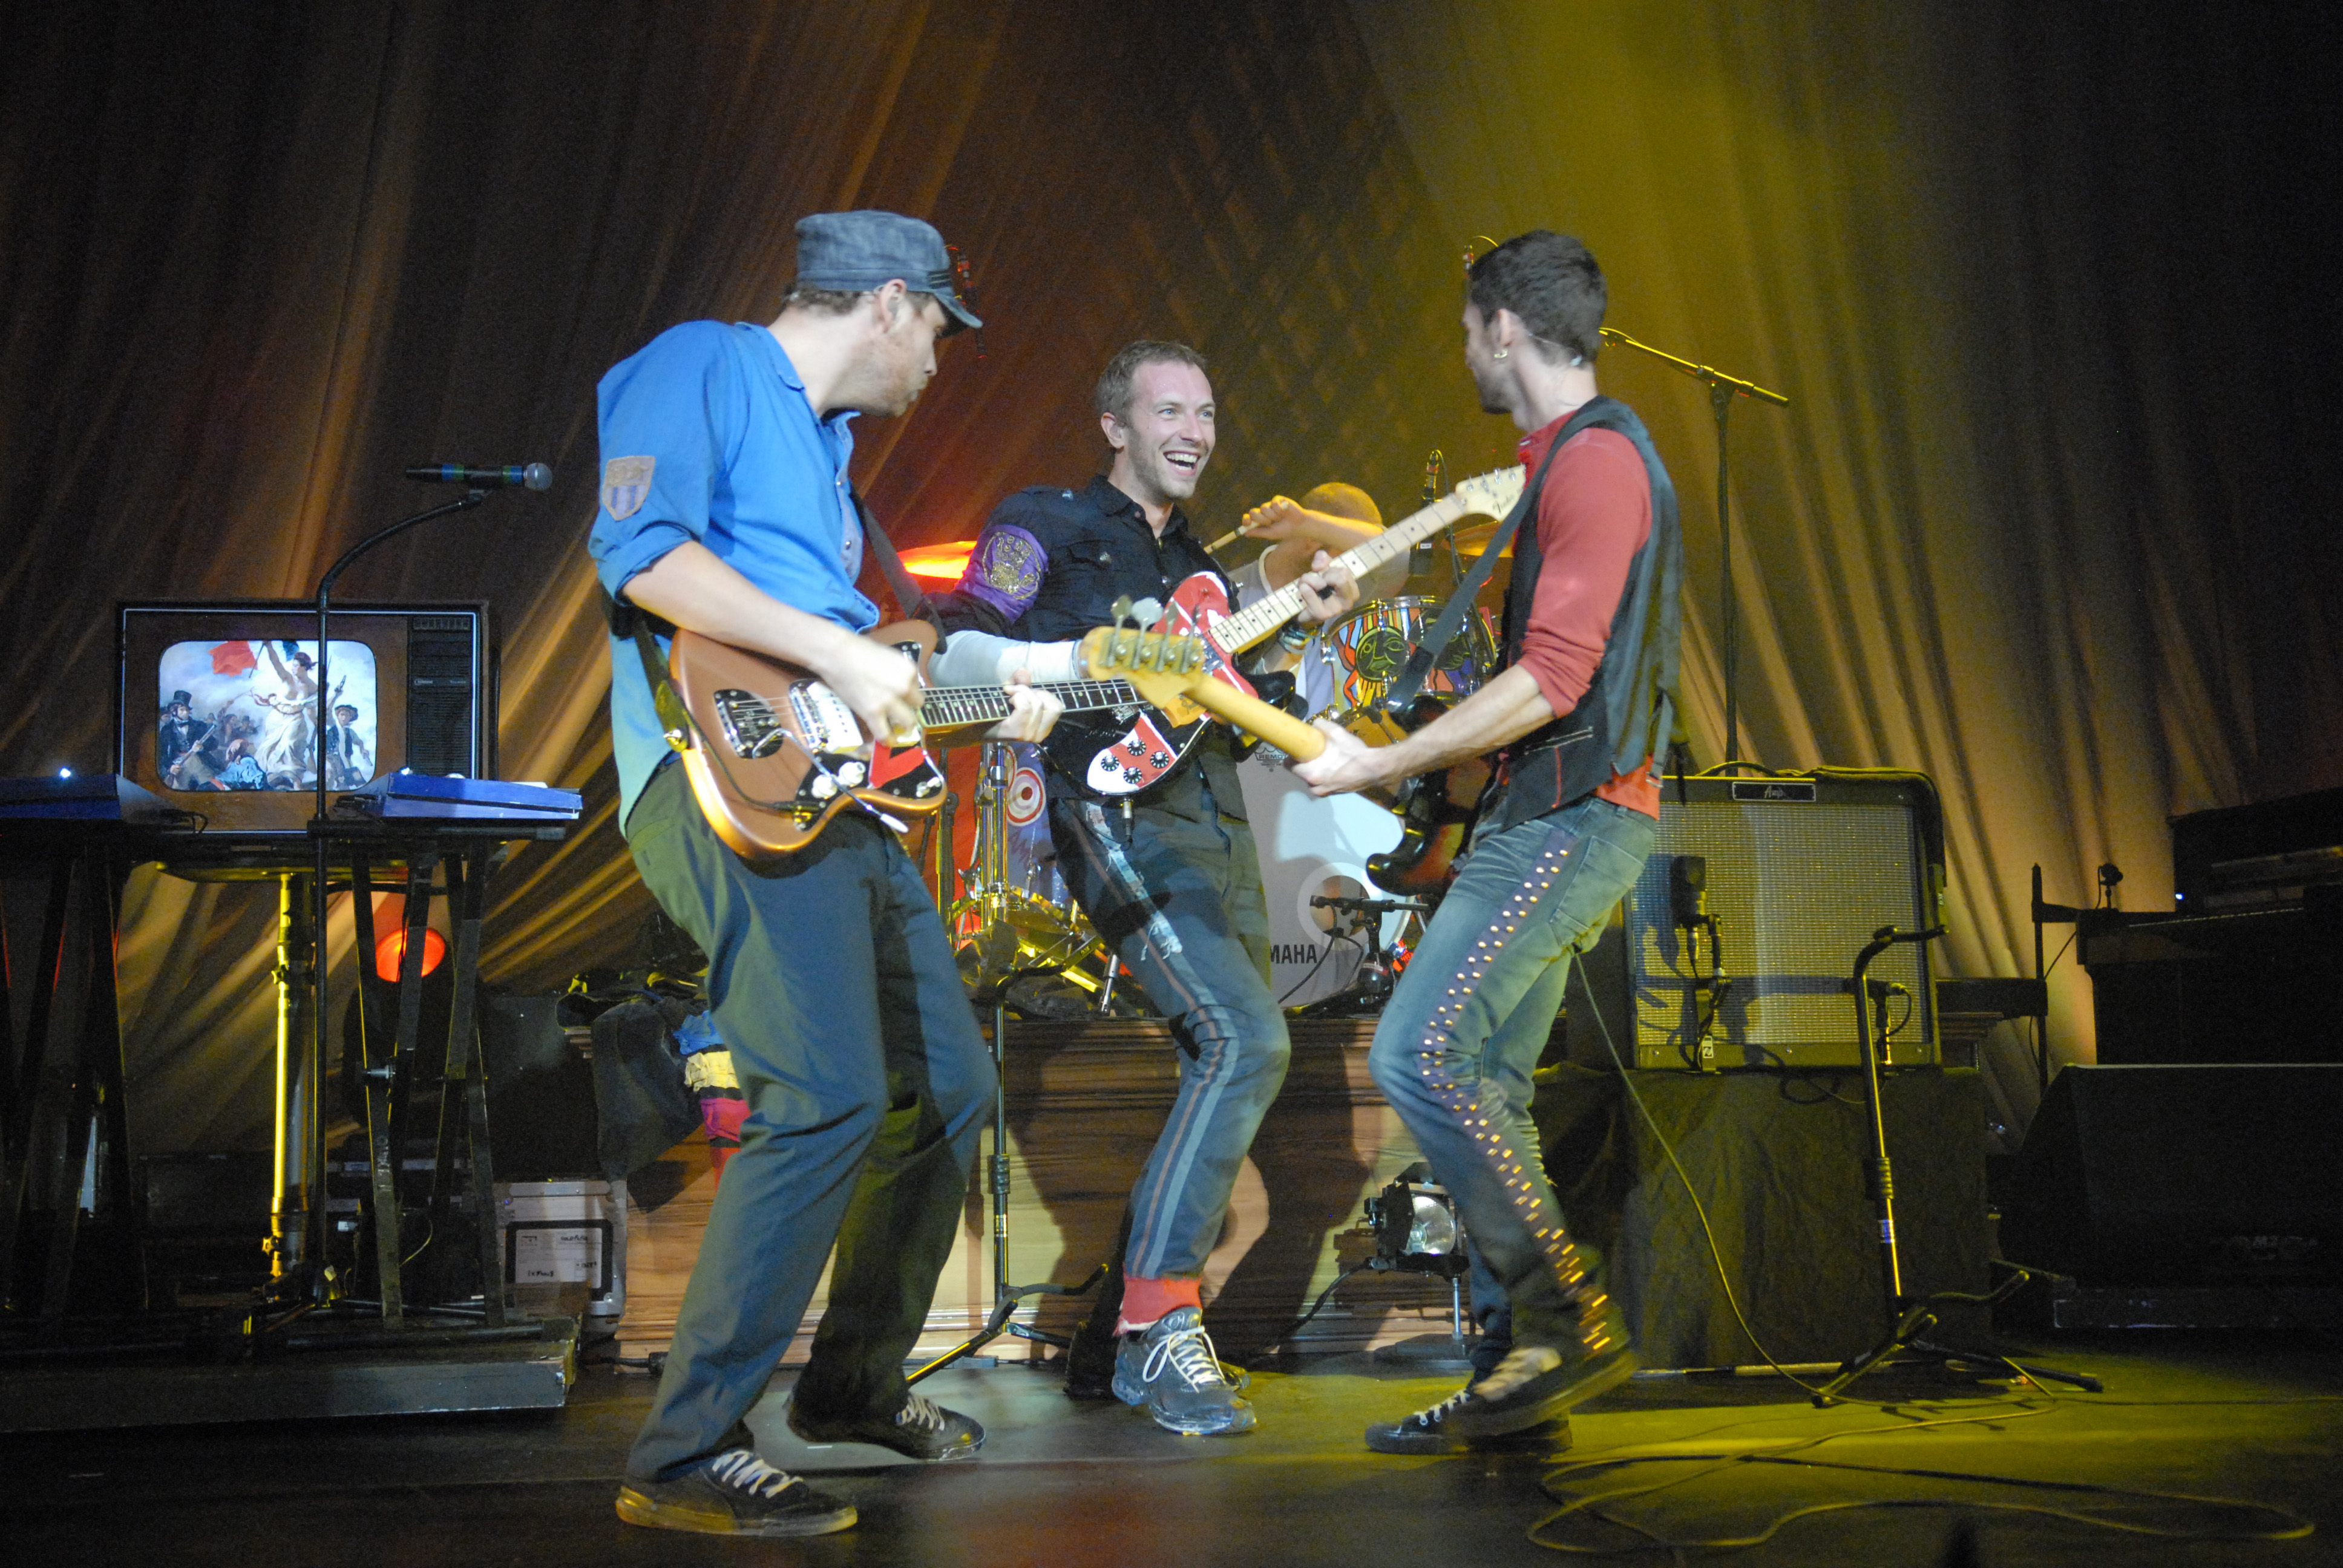 Coldplay Gets Hot The Making Of A Legendary Band